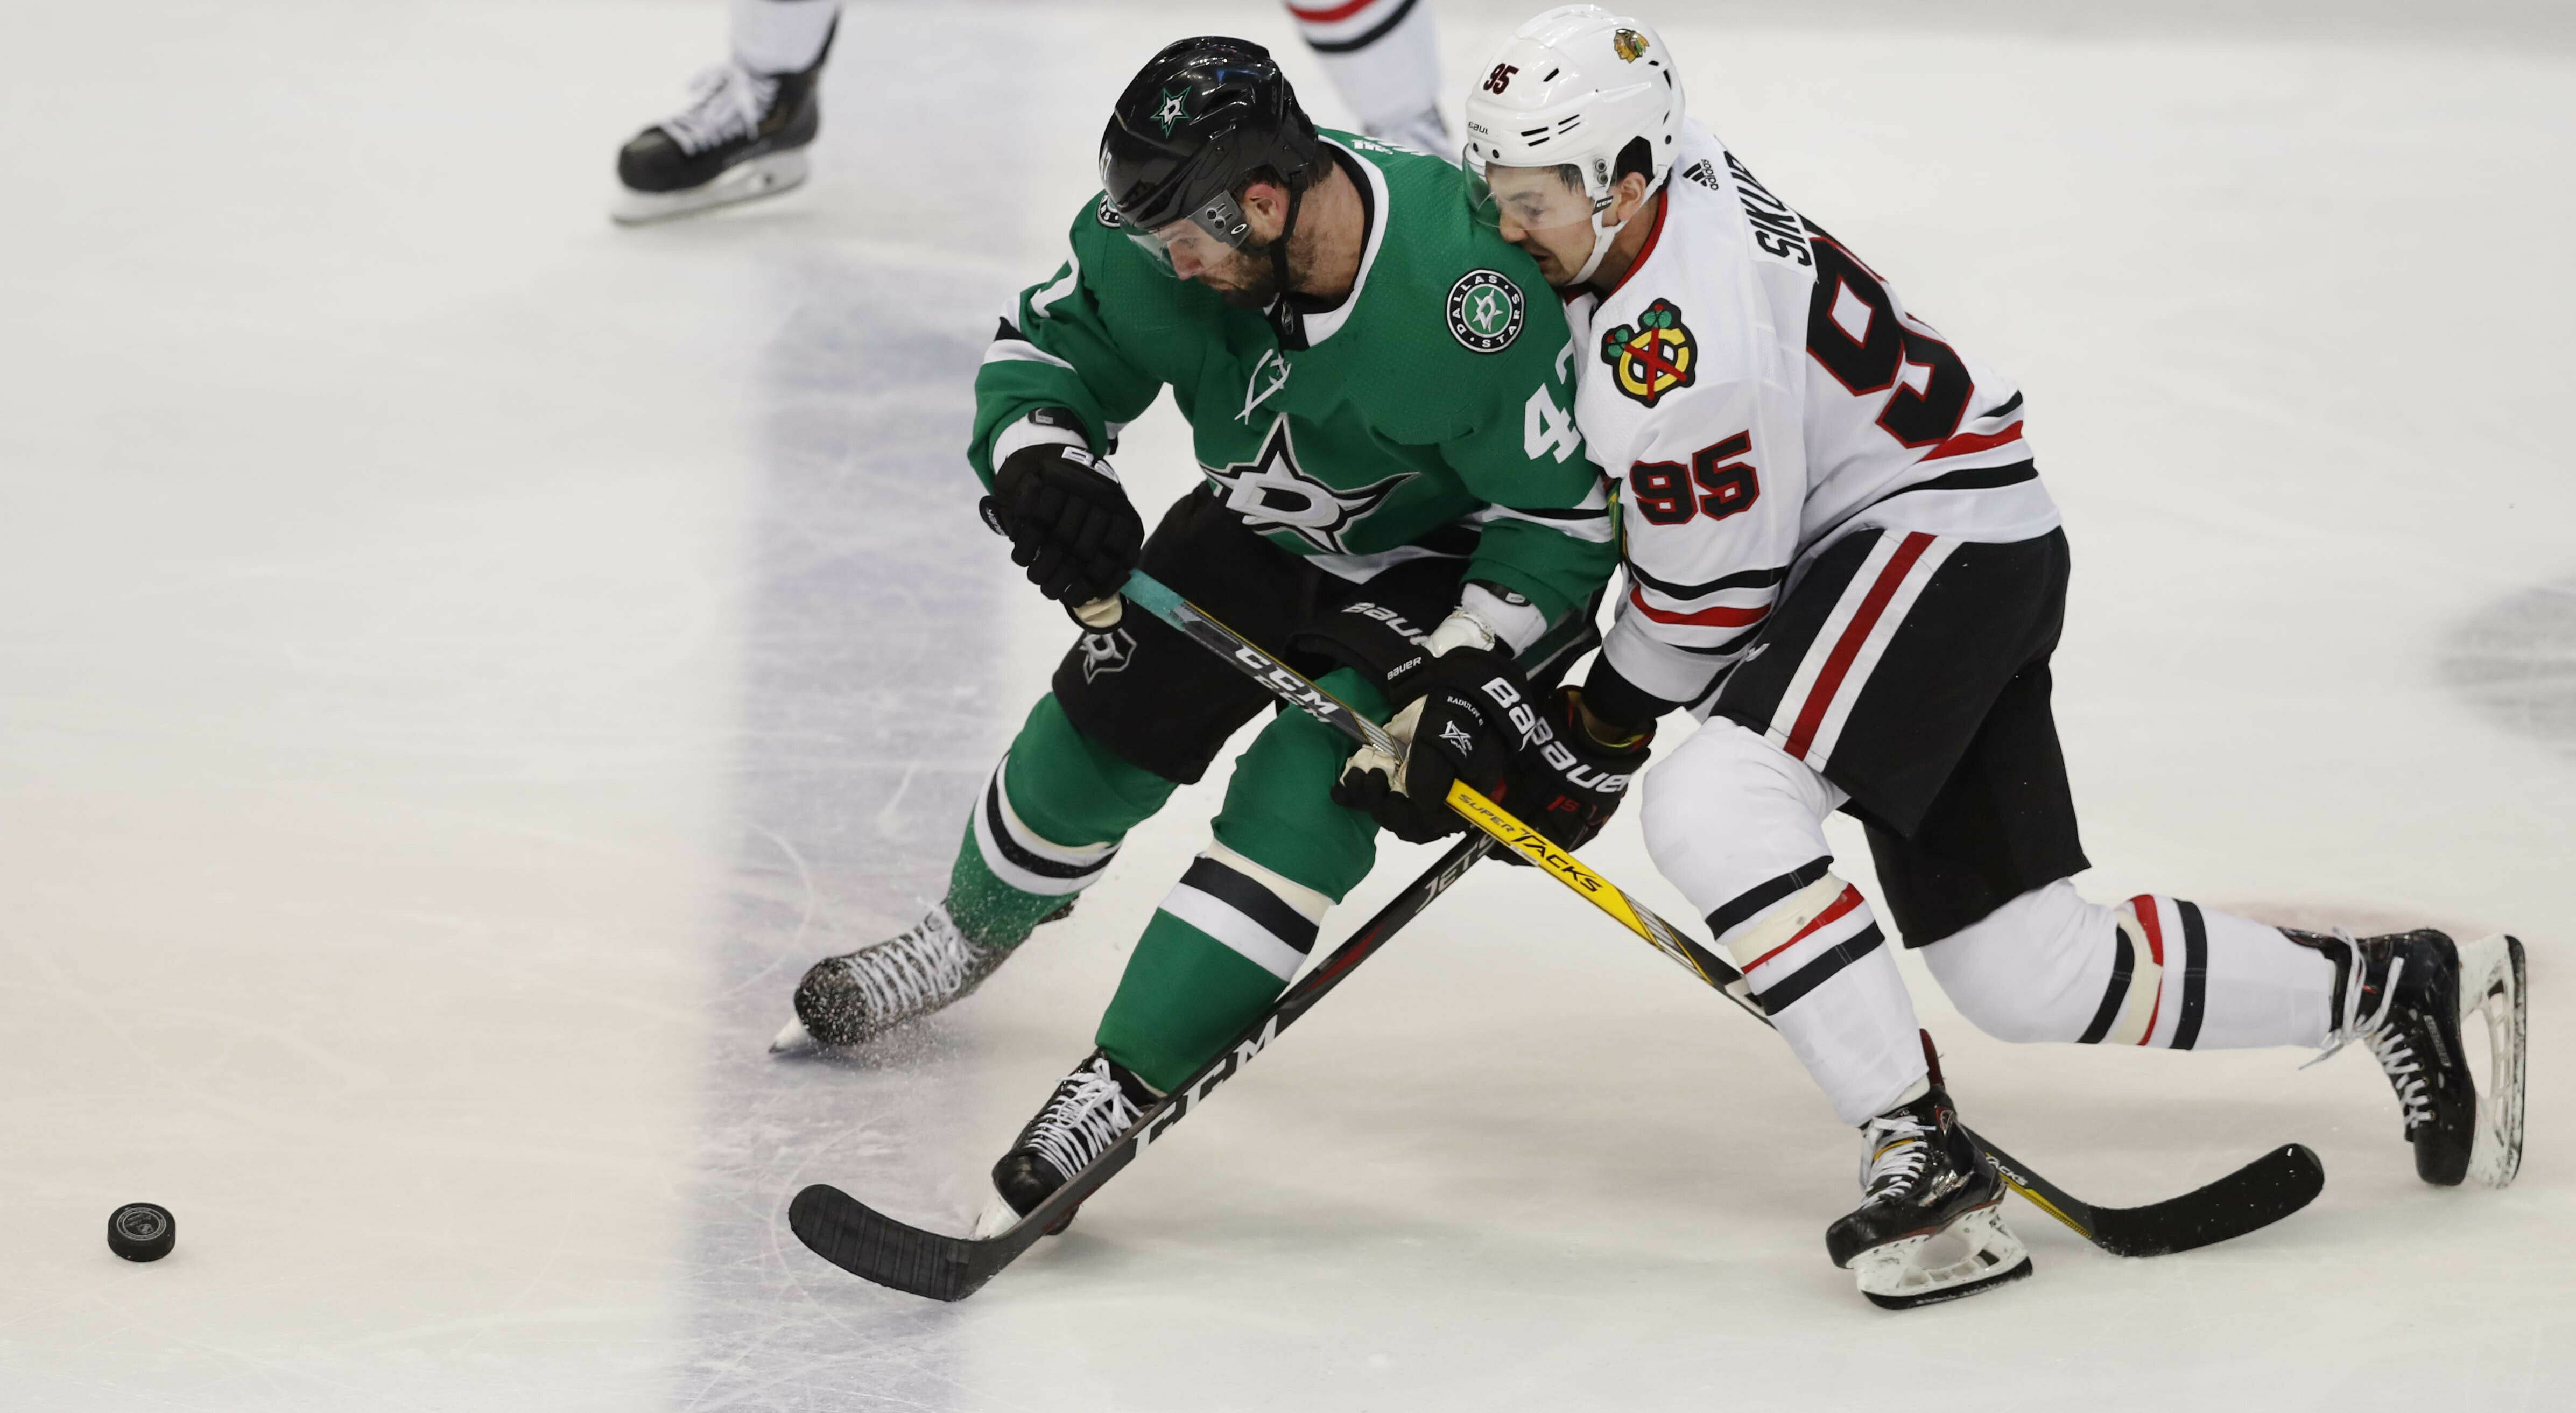 Chicago Blackhawks right wing Dylan Sikura (95) and Dallas Stars right wing Alexander Radulov (47) skate for control of the puck during the second period of an NHL hockey game in Dallas, Saturday, March 9, 2019.